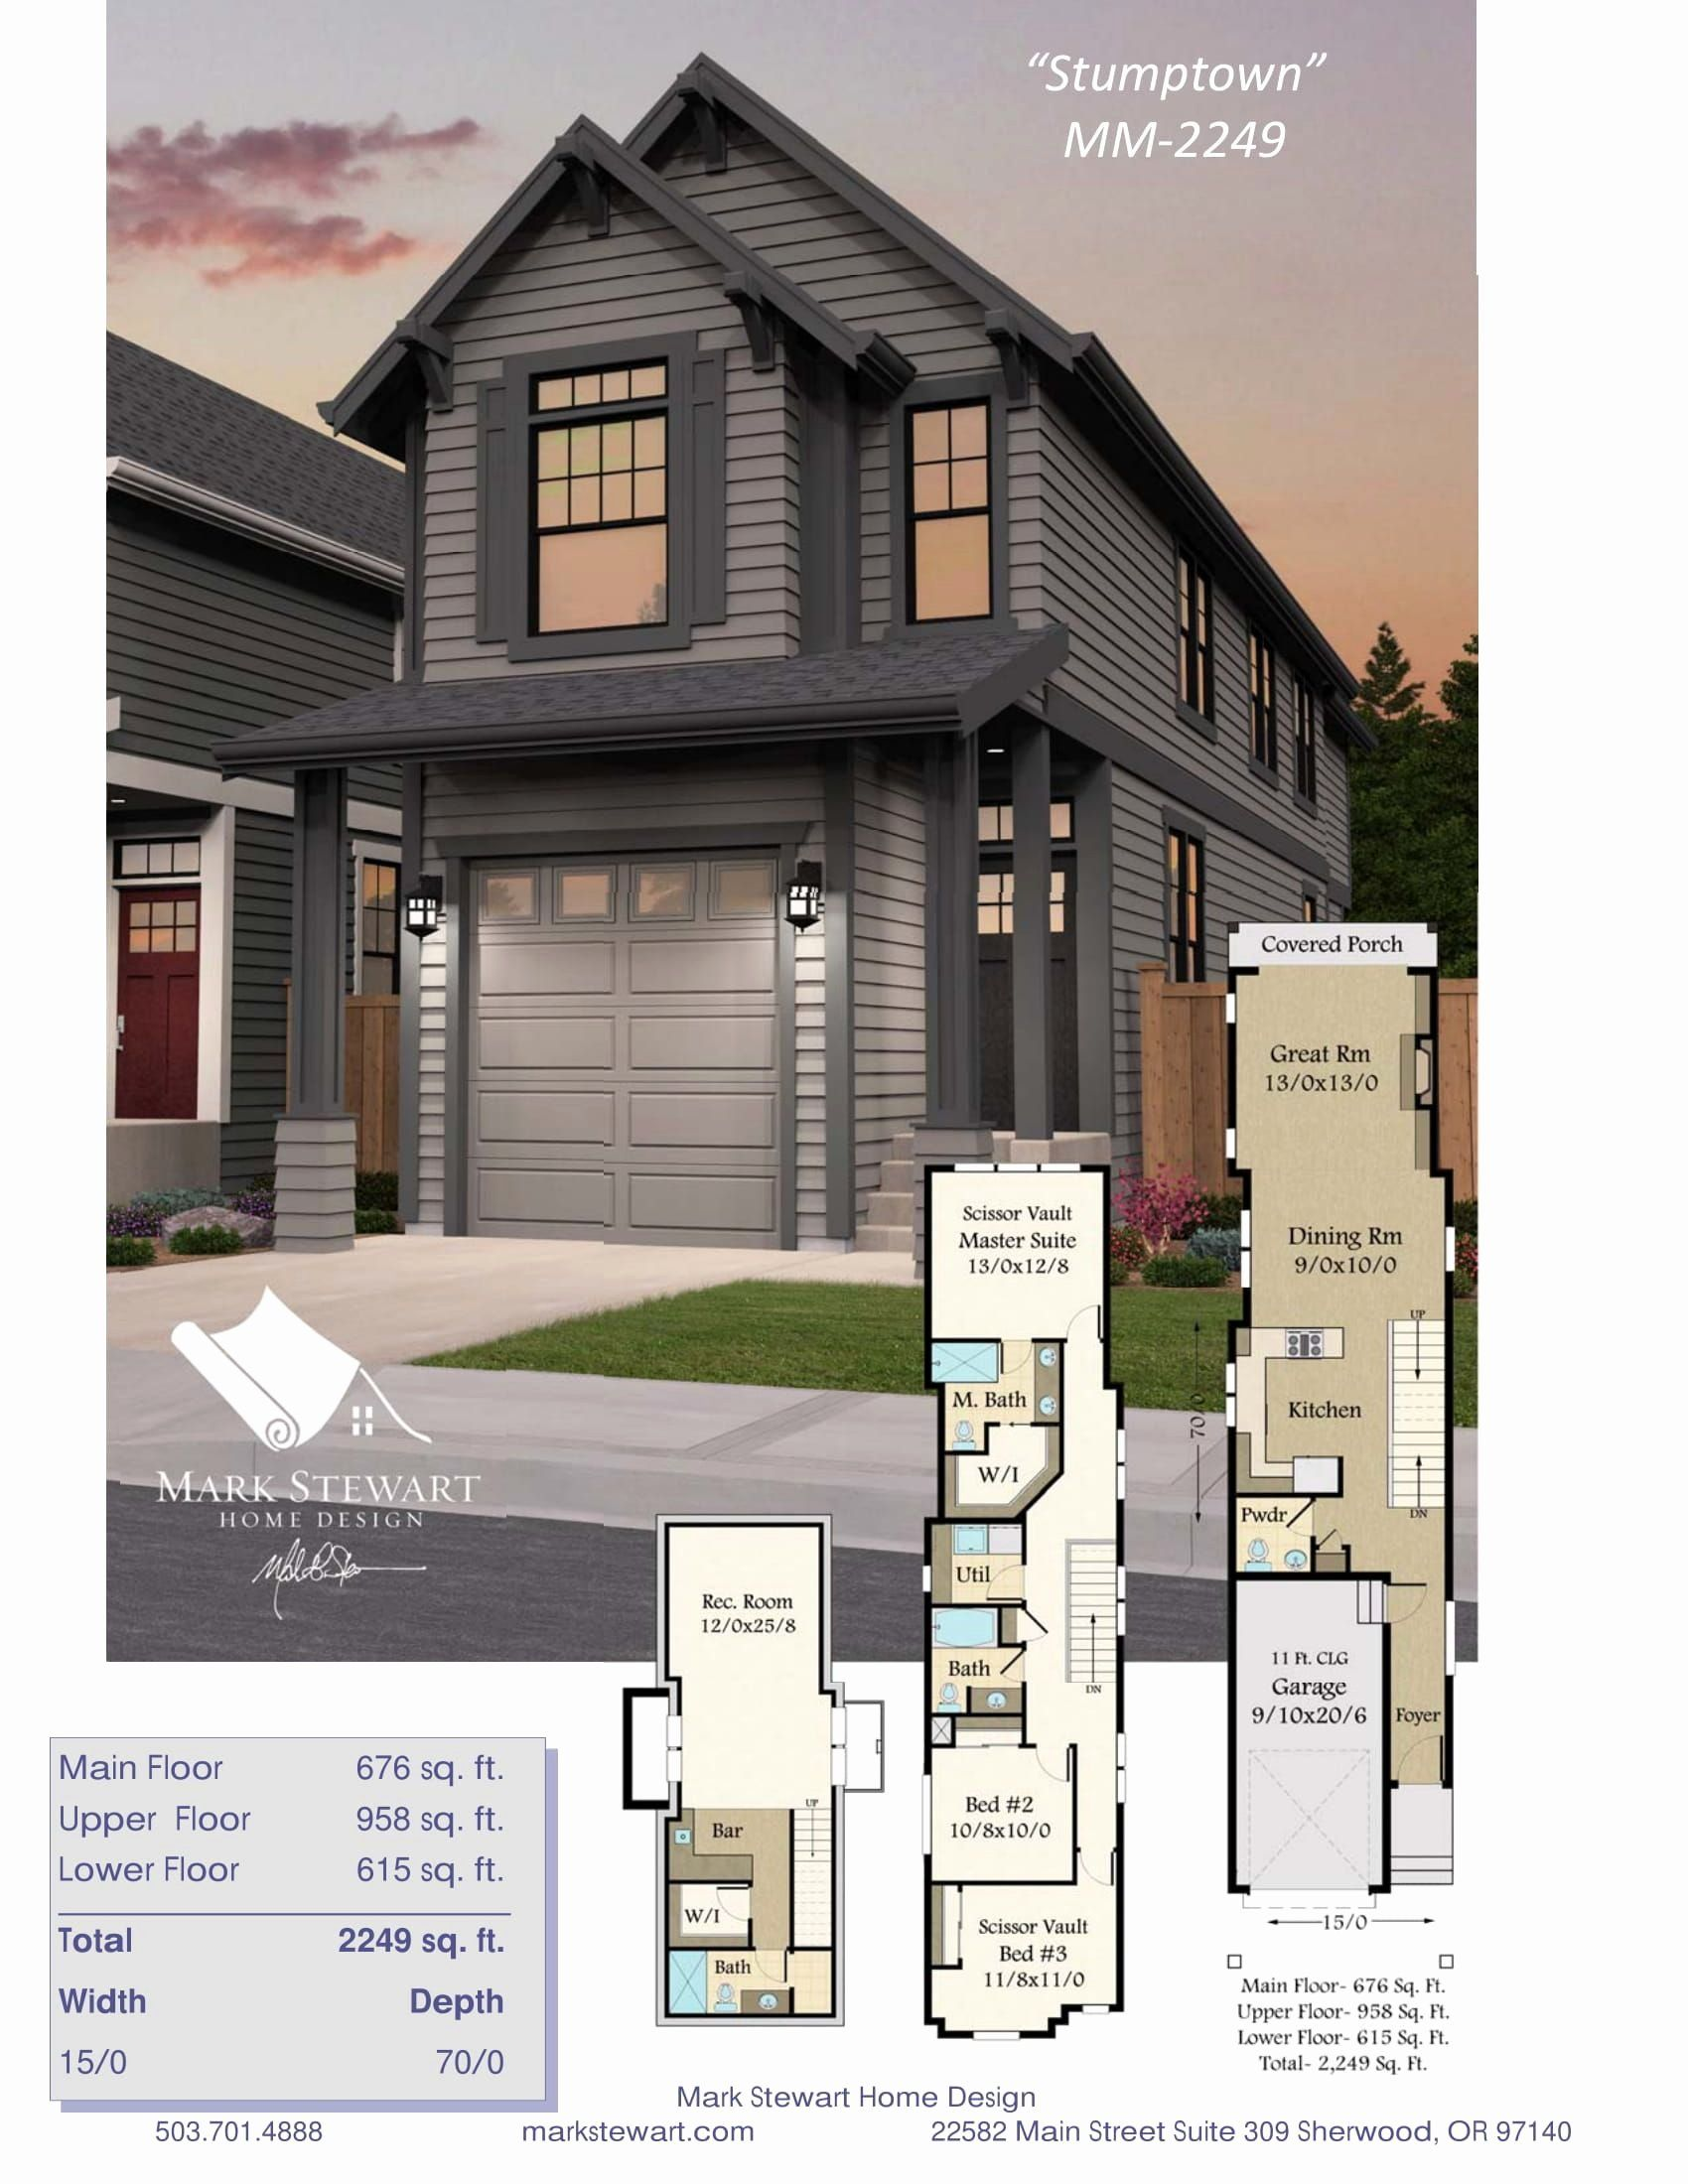 15 Foot Wide House Plans Inspirational This 15 Ft Wide Portland Approved Modern Farm House In 2020 Craftsman Bungalow House Plans Small Farmhouse Plans Farmhouse Plans